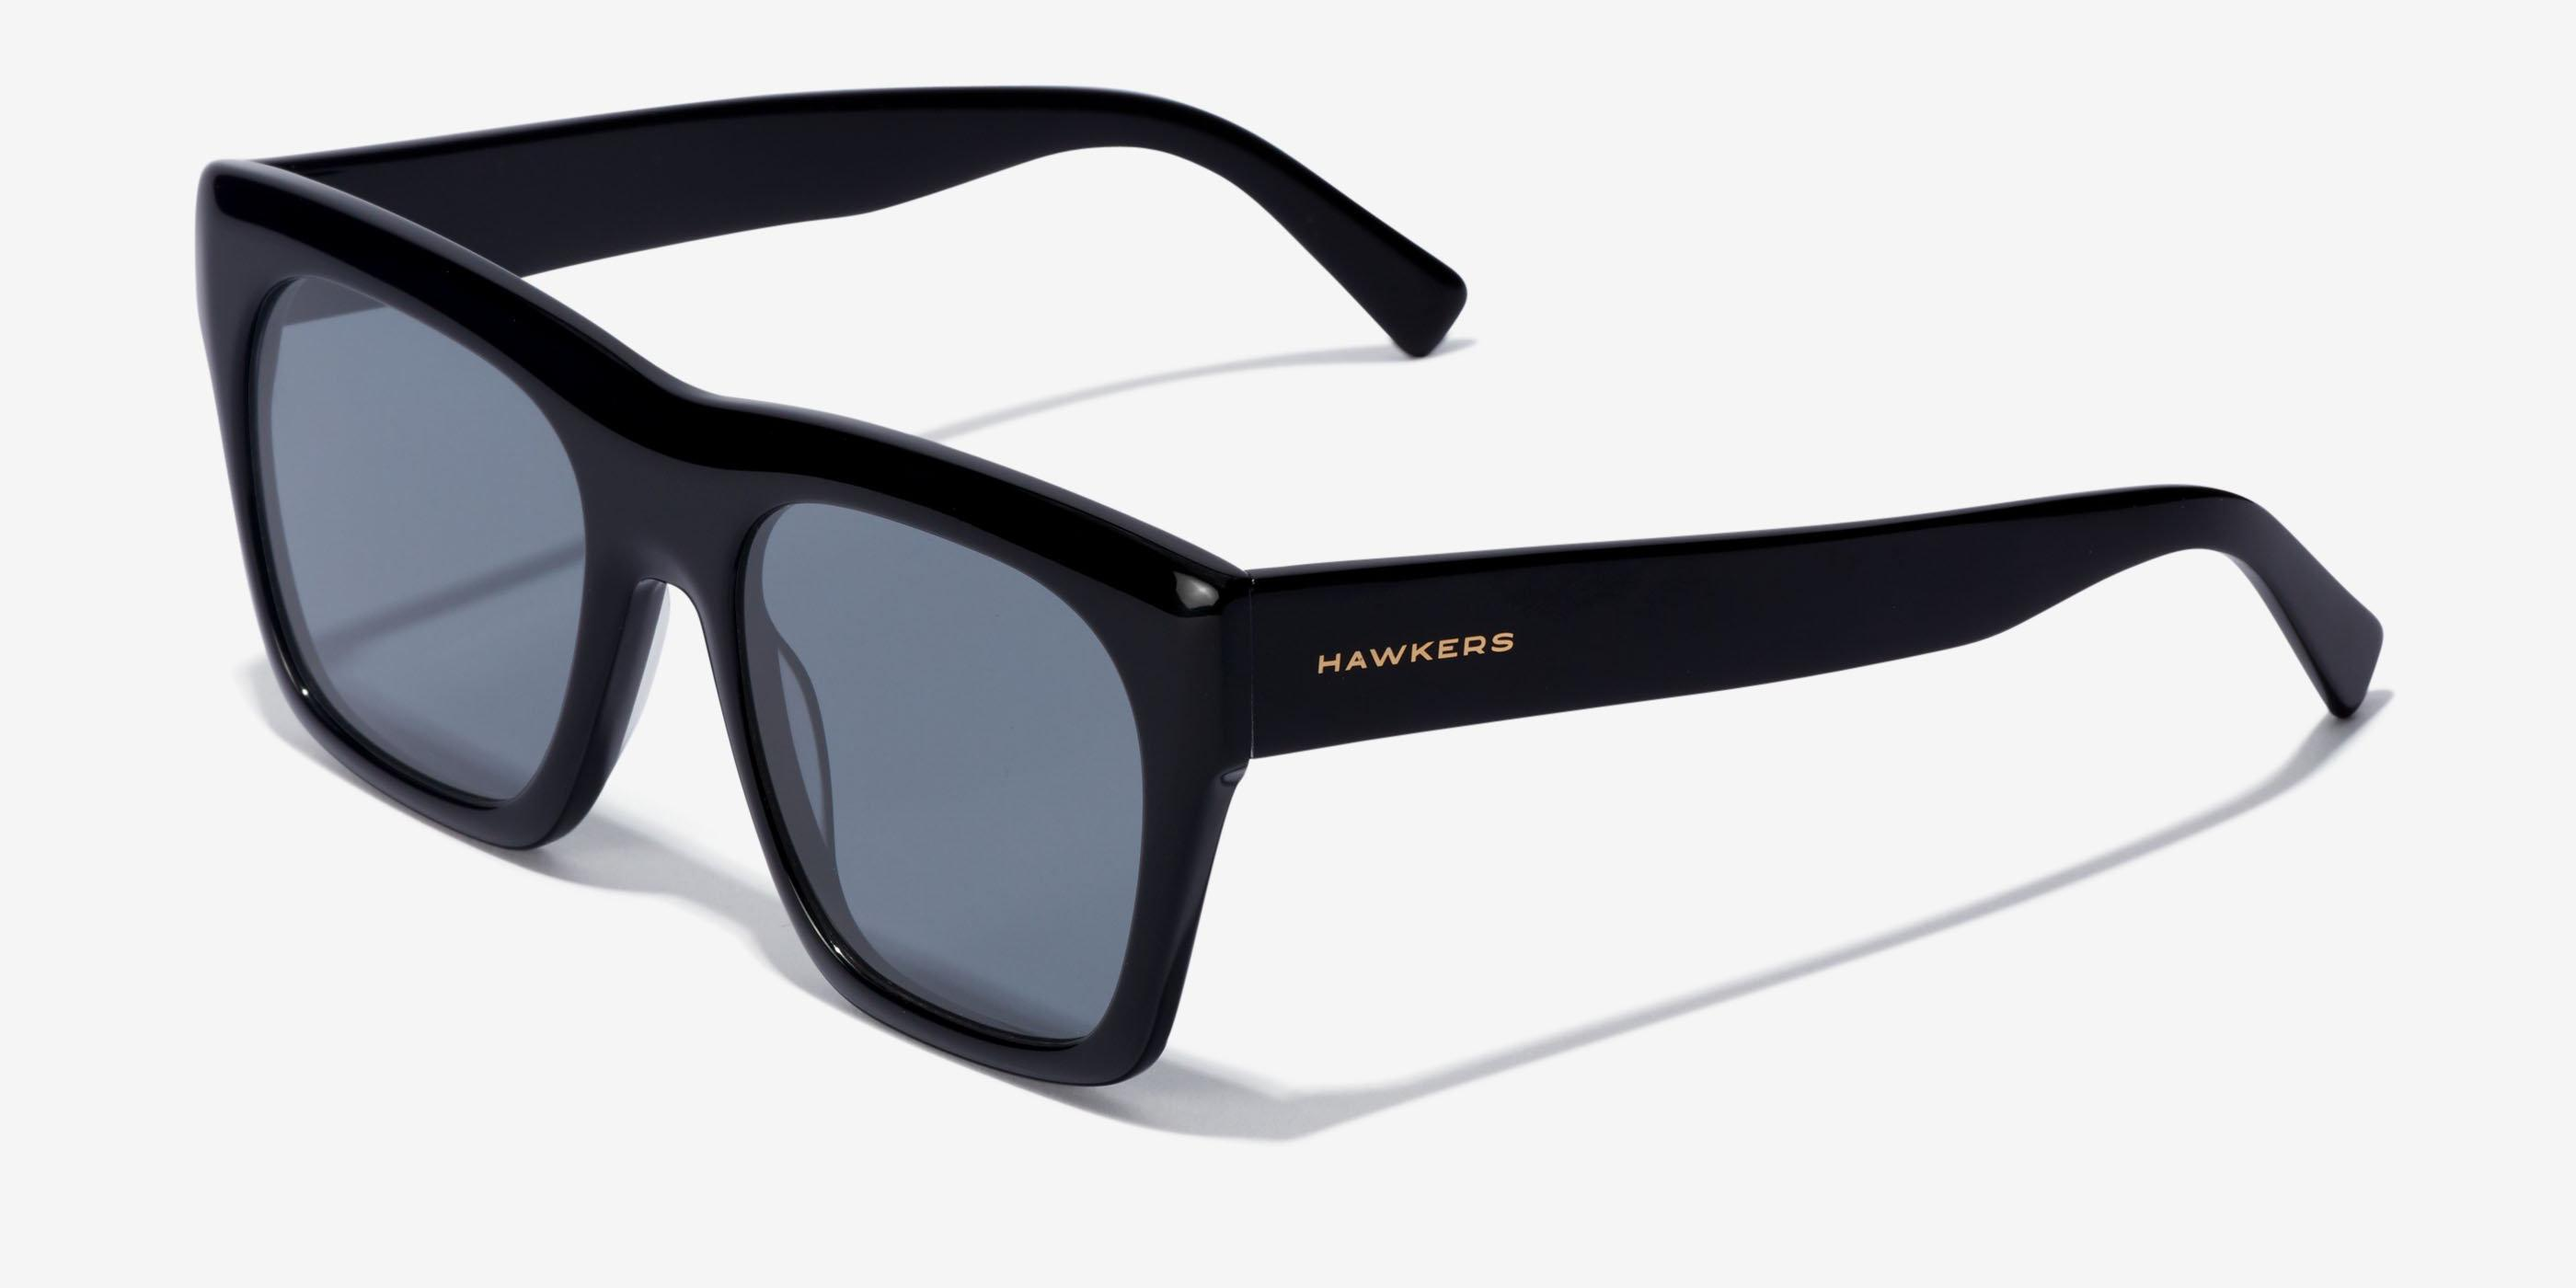 Occhiali da sole Hawkers Black Diamond Narciso, lente nere